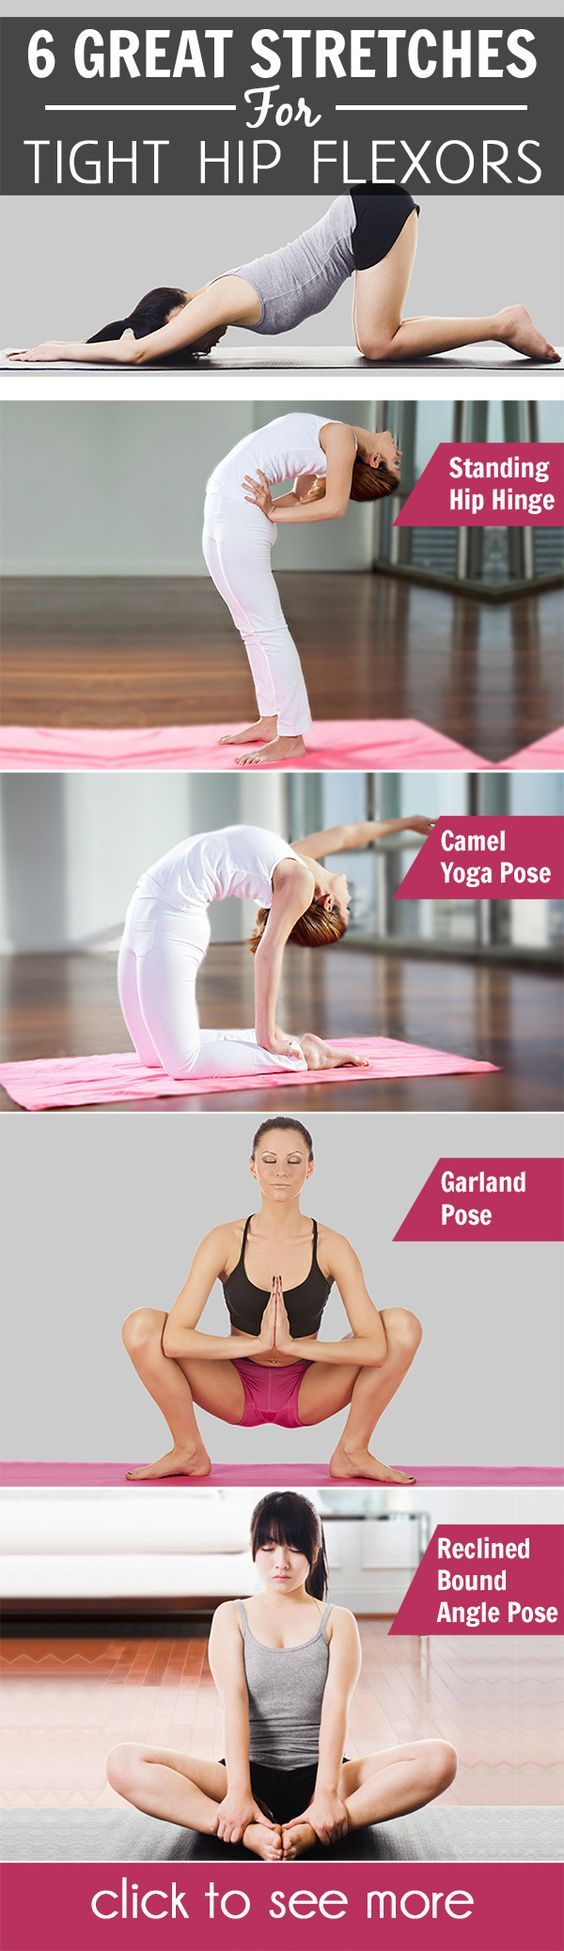 This is where the hip flexor stretches come to the rescue! These stretches help loosen the hip flexors and improve their flexibility.: